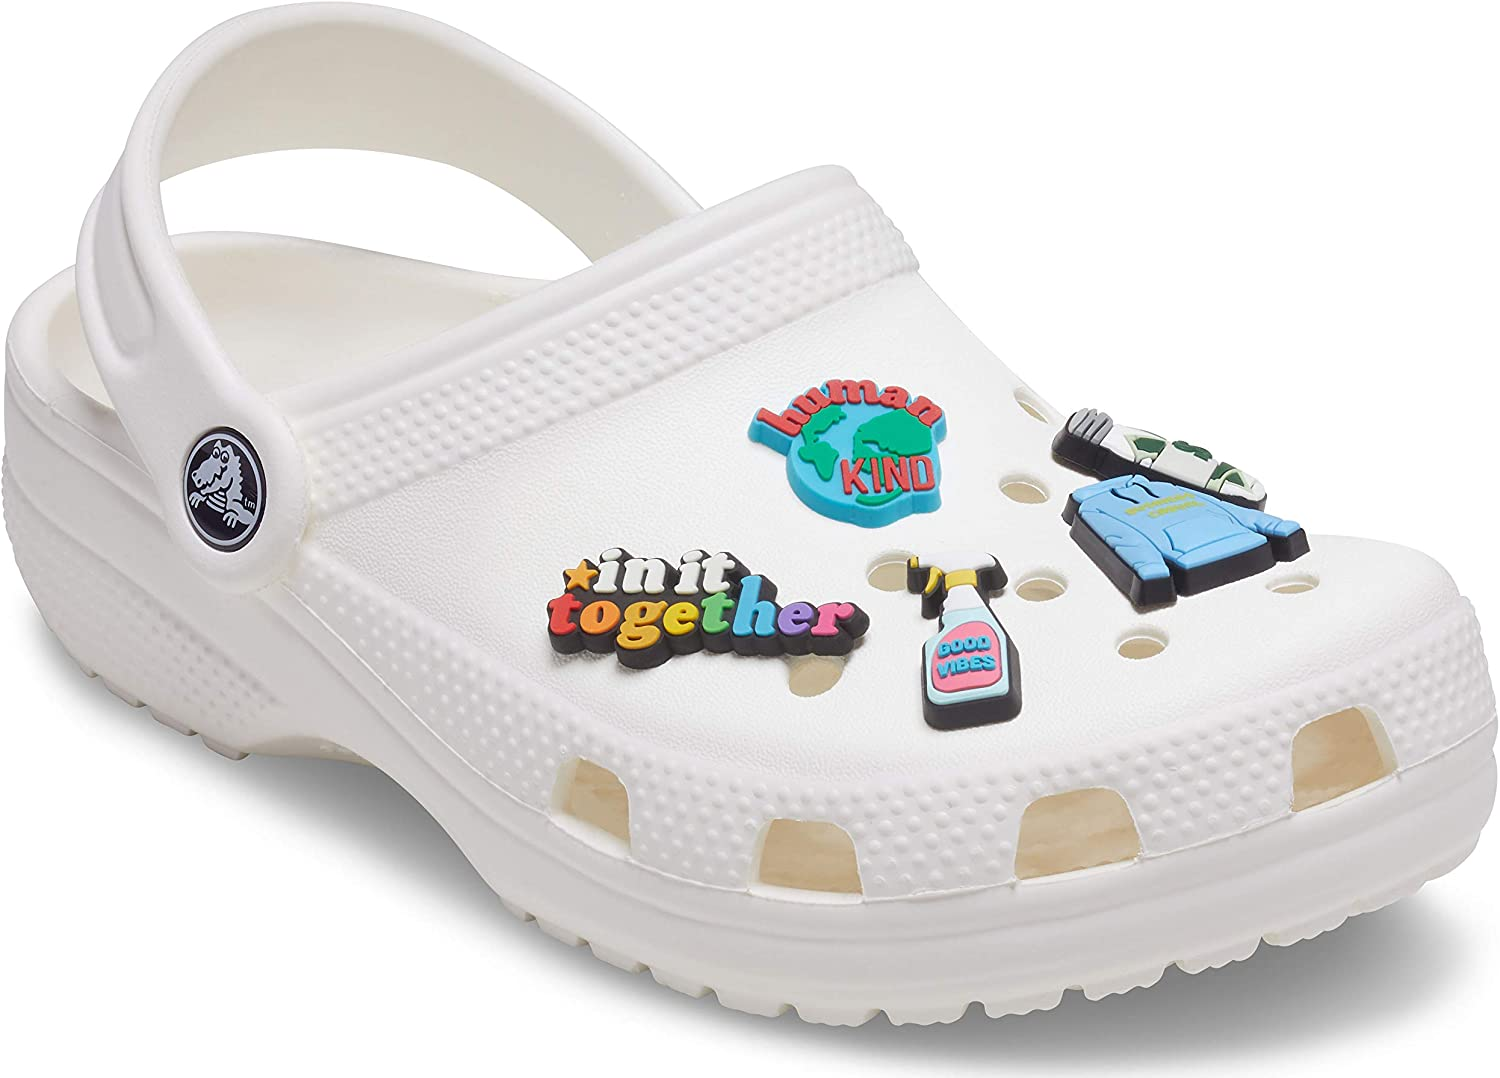 Crocs Shoe Charms 5-Pack   Personalize Jibbitz, Stay Home, Small